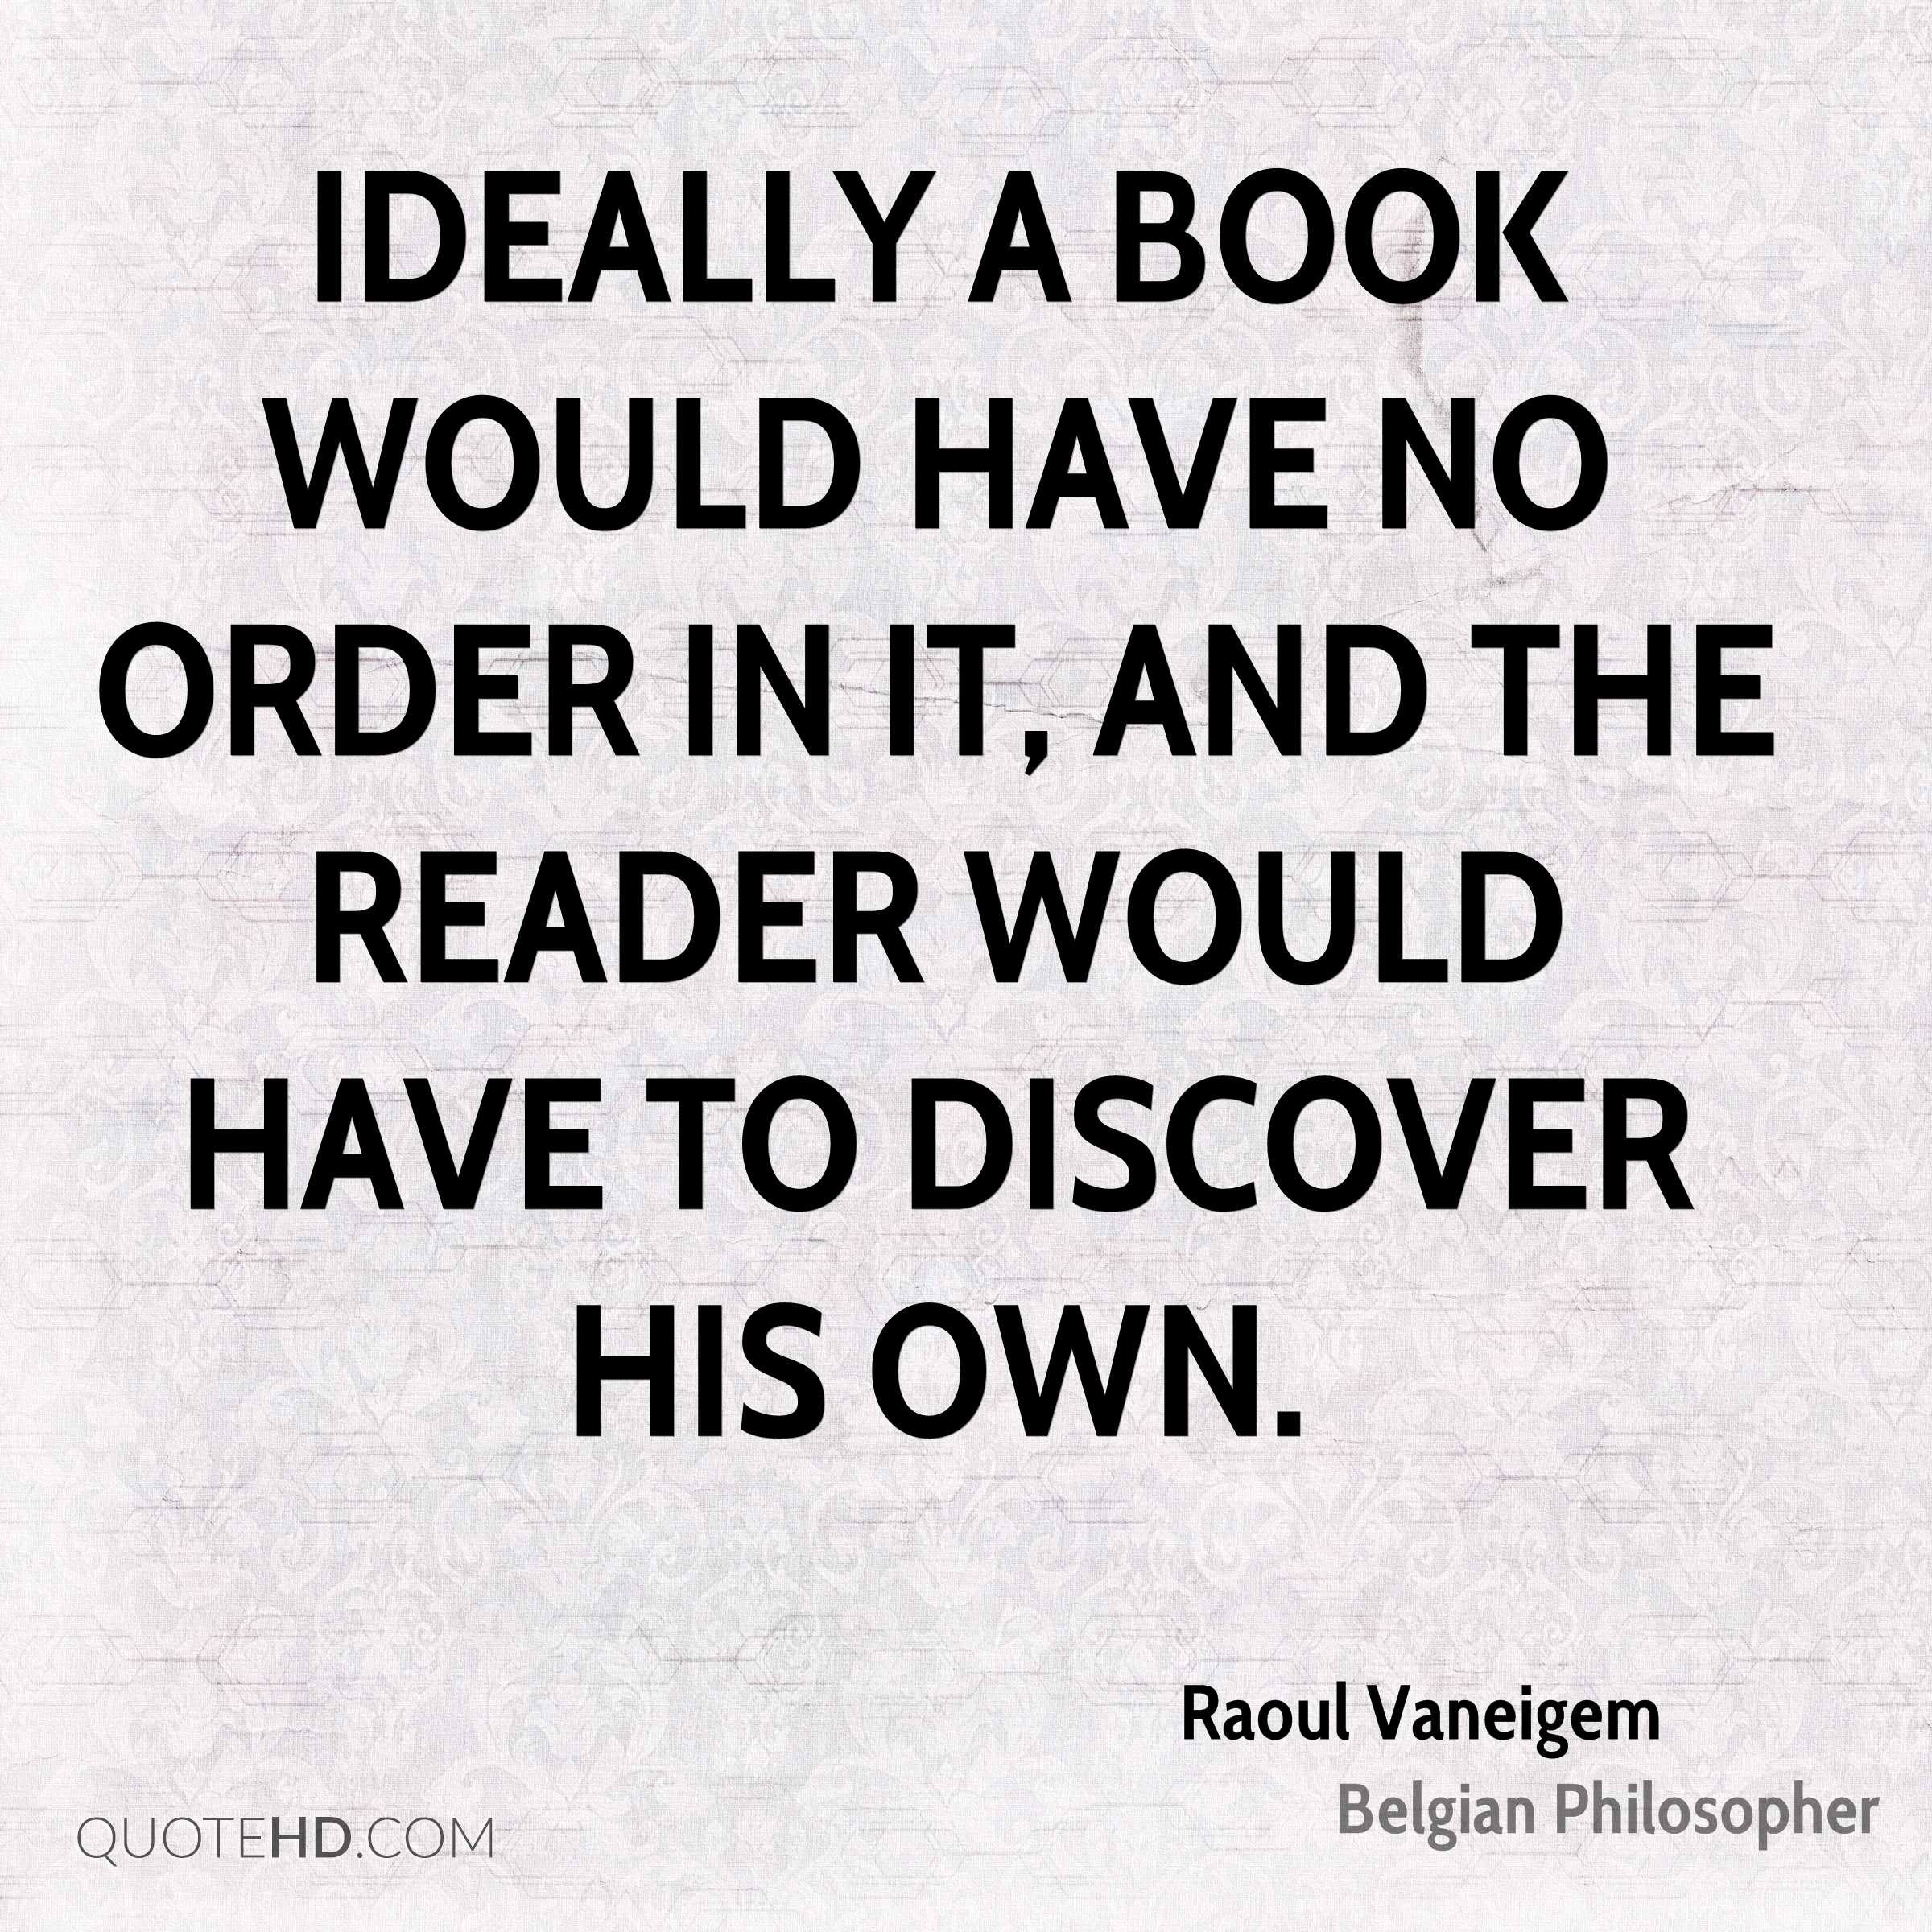 Ideally a book would have no order in it, and the reader would have to discover his own.